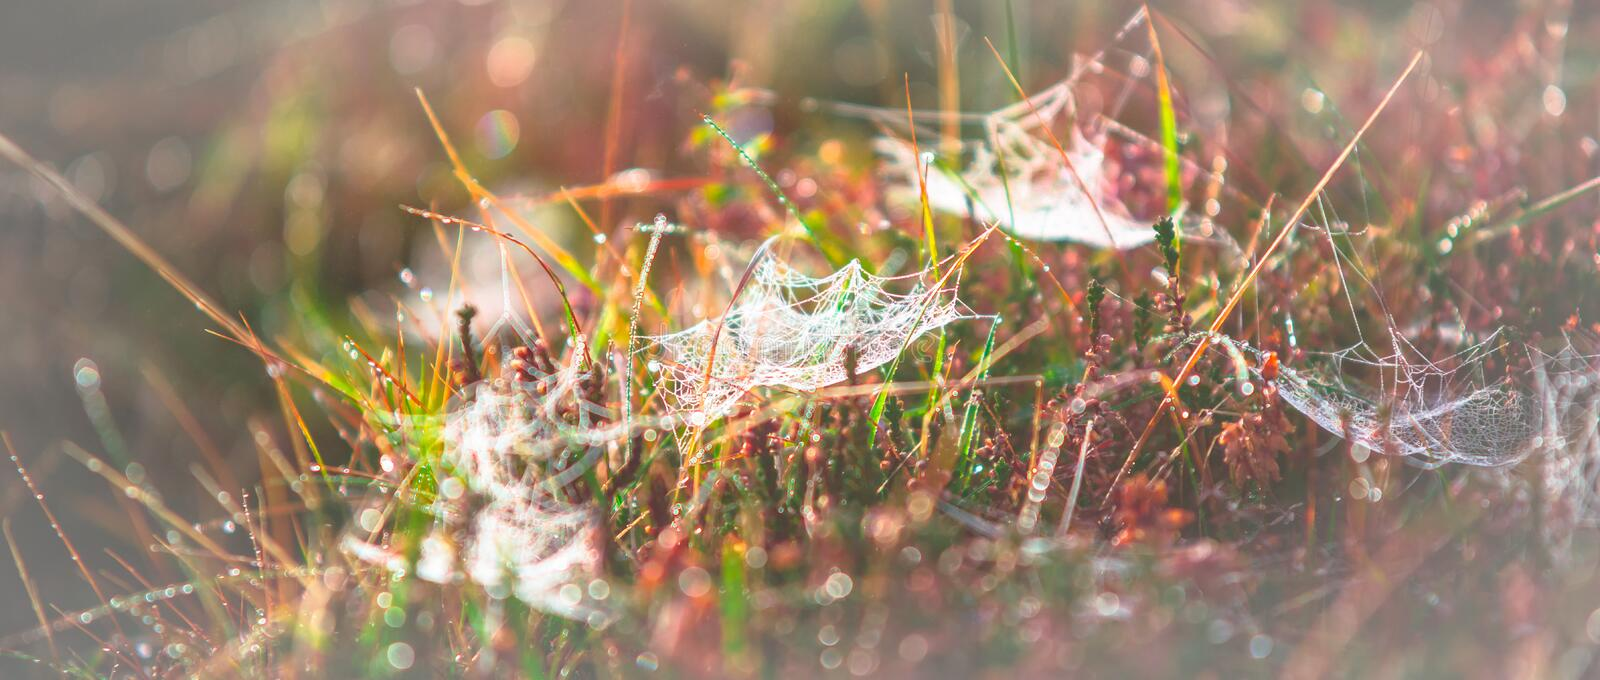 Morning meadow - fresh grass, raindrops, spider webs, sunlight background, nature background stock image